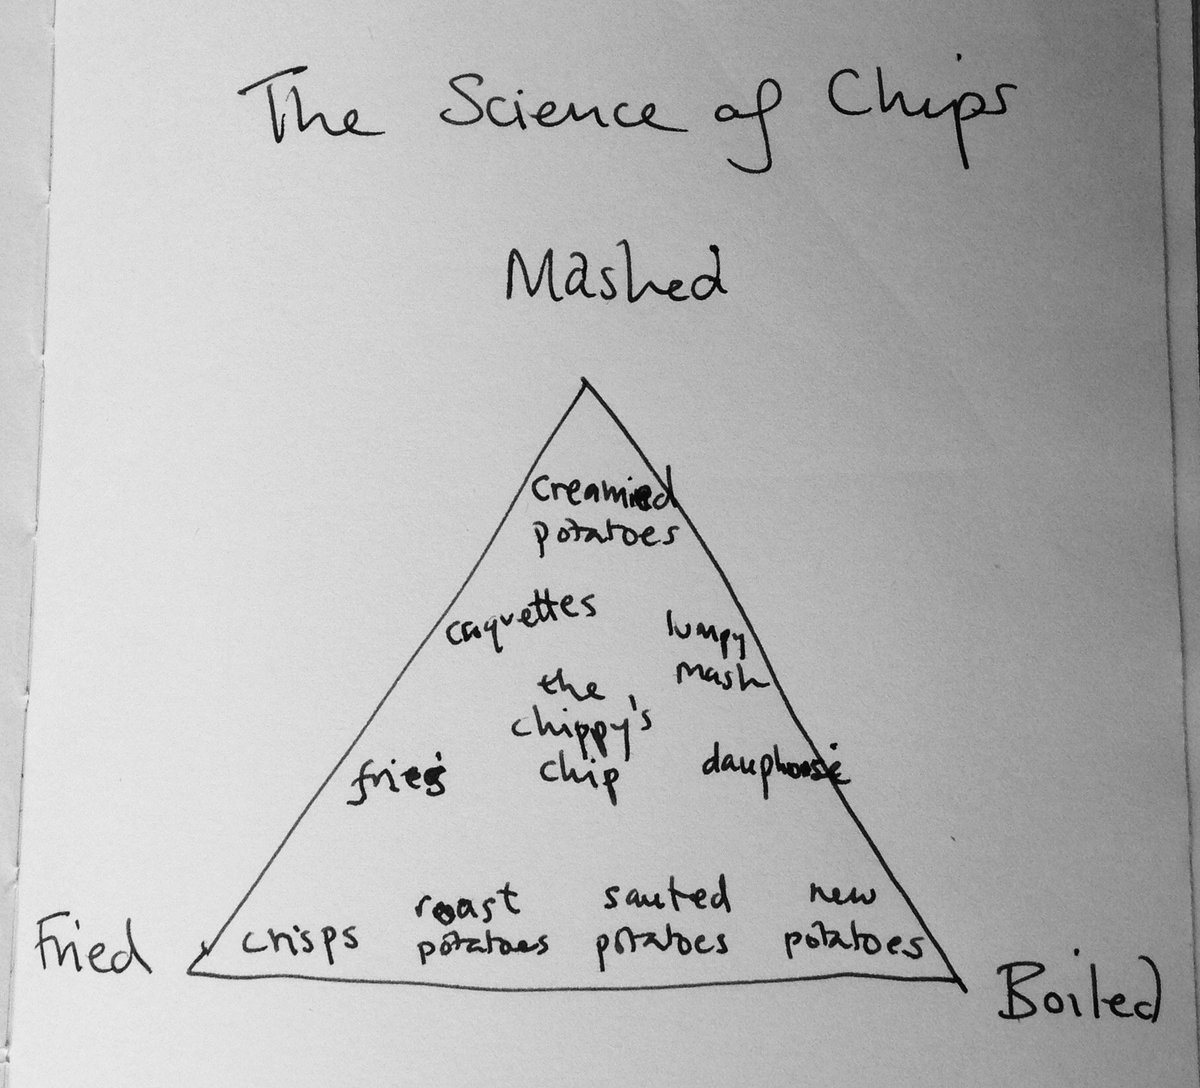 Here's my phase diagram for chips. If you want to know more come to @cheltfestivals Science Festival next week... https://t.co/7uSmS1kc50